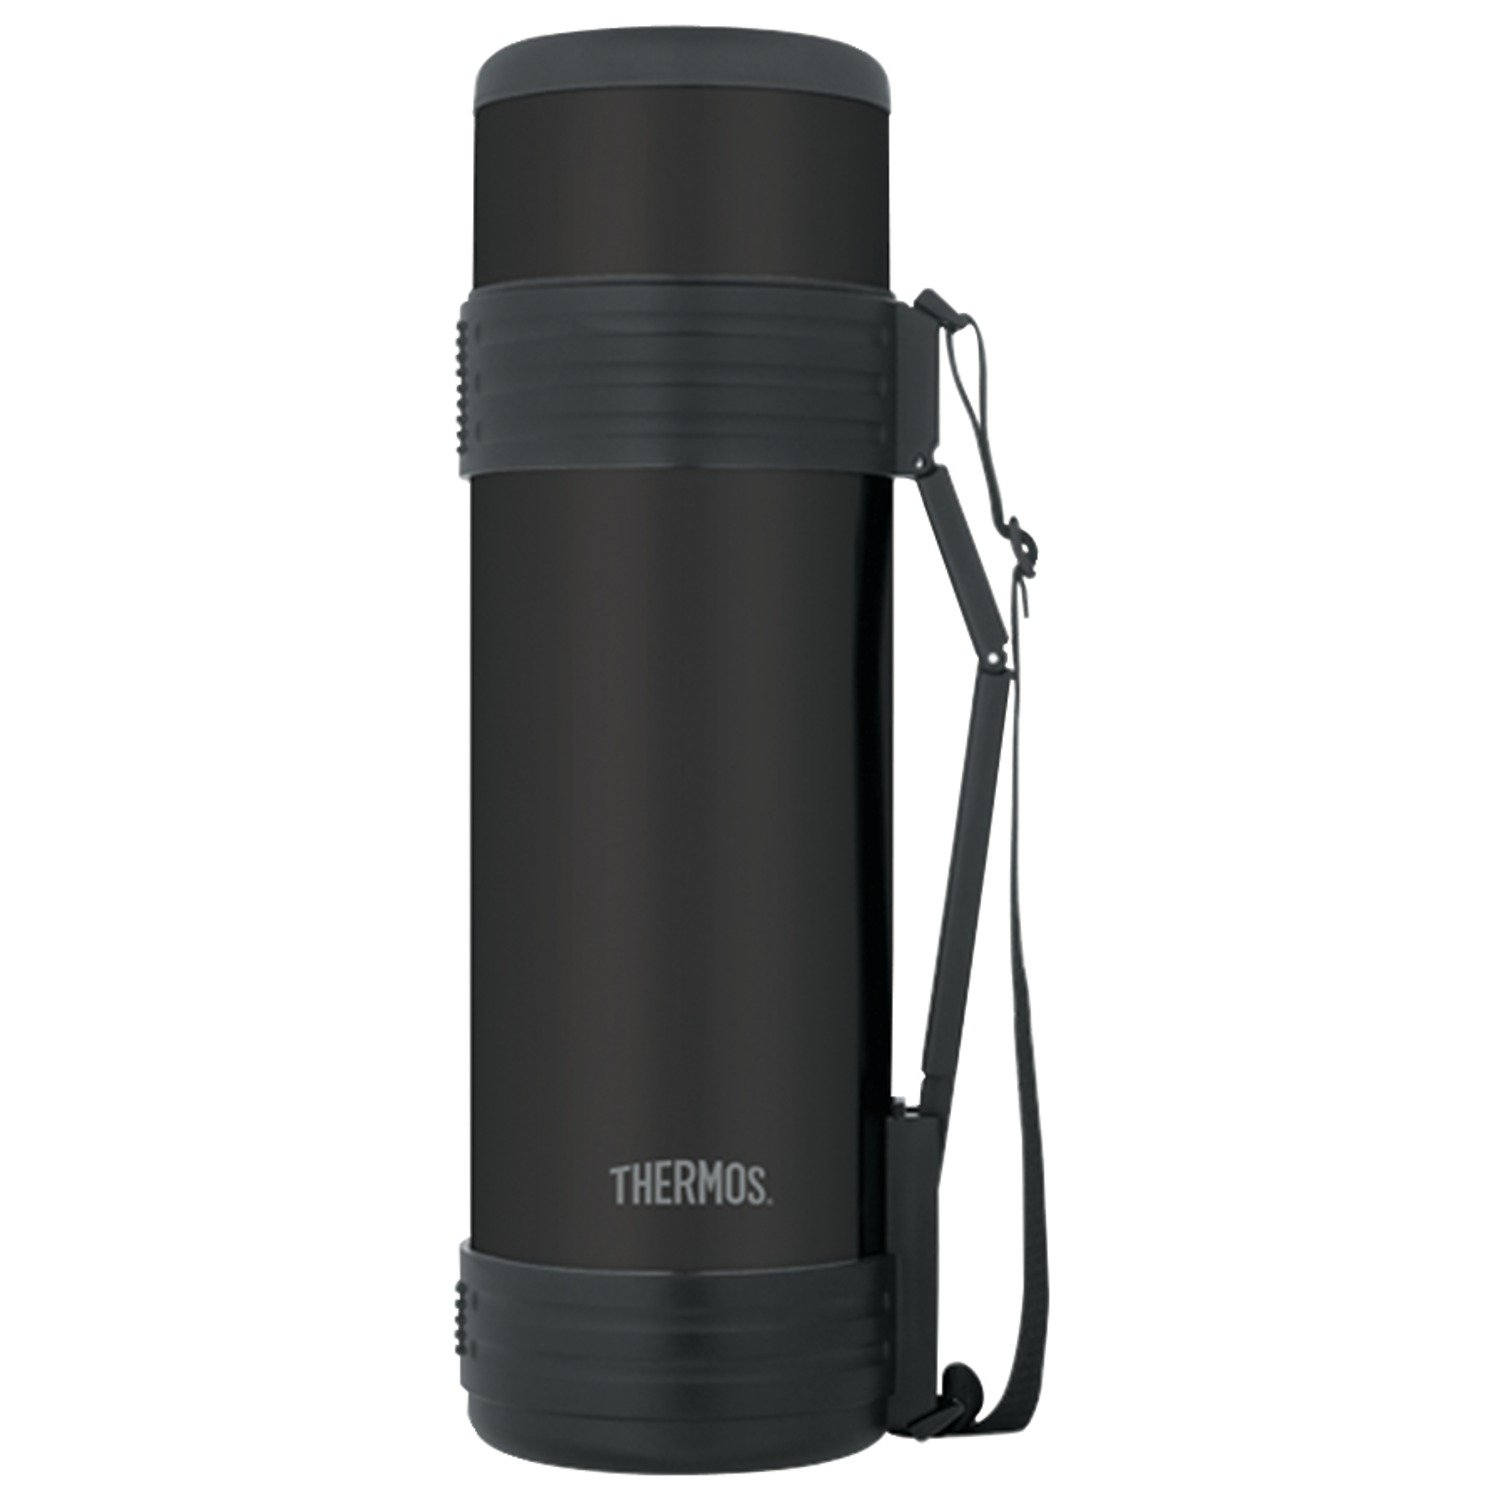 Thermos 61 Ounce Vacuum Insulated Beverage Bottle with Folding Handle, Matte Black by Thermos